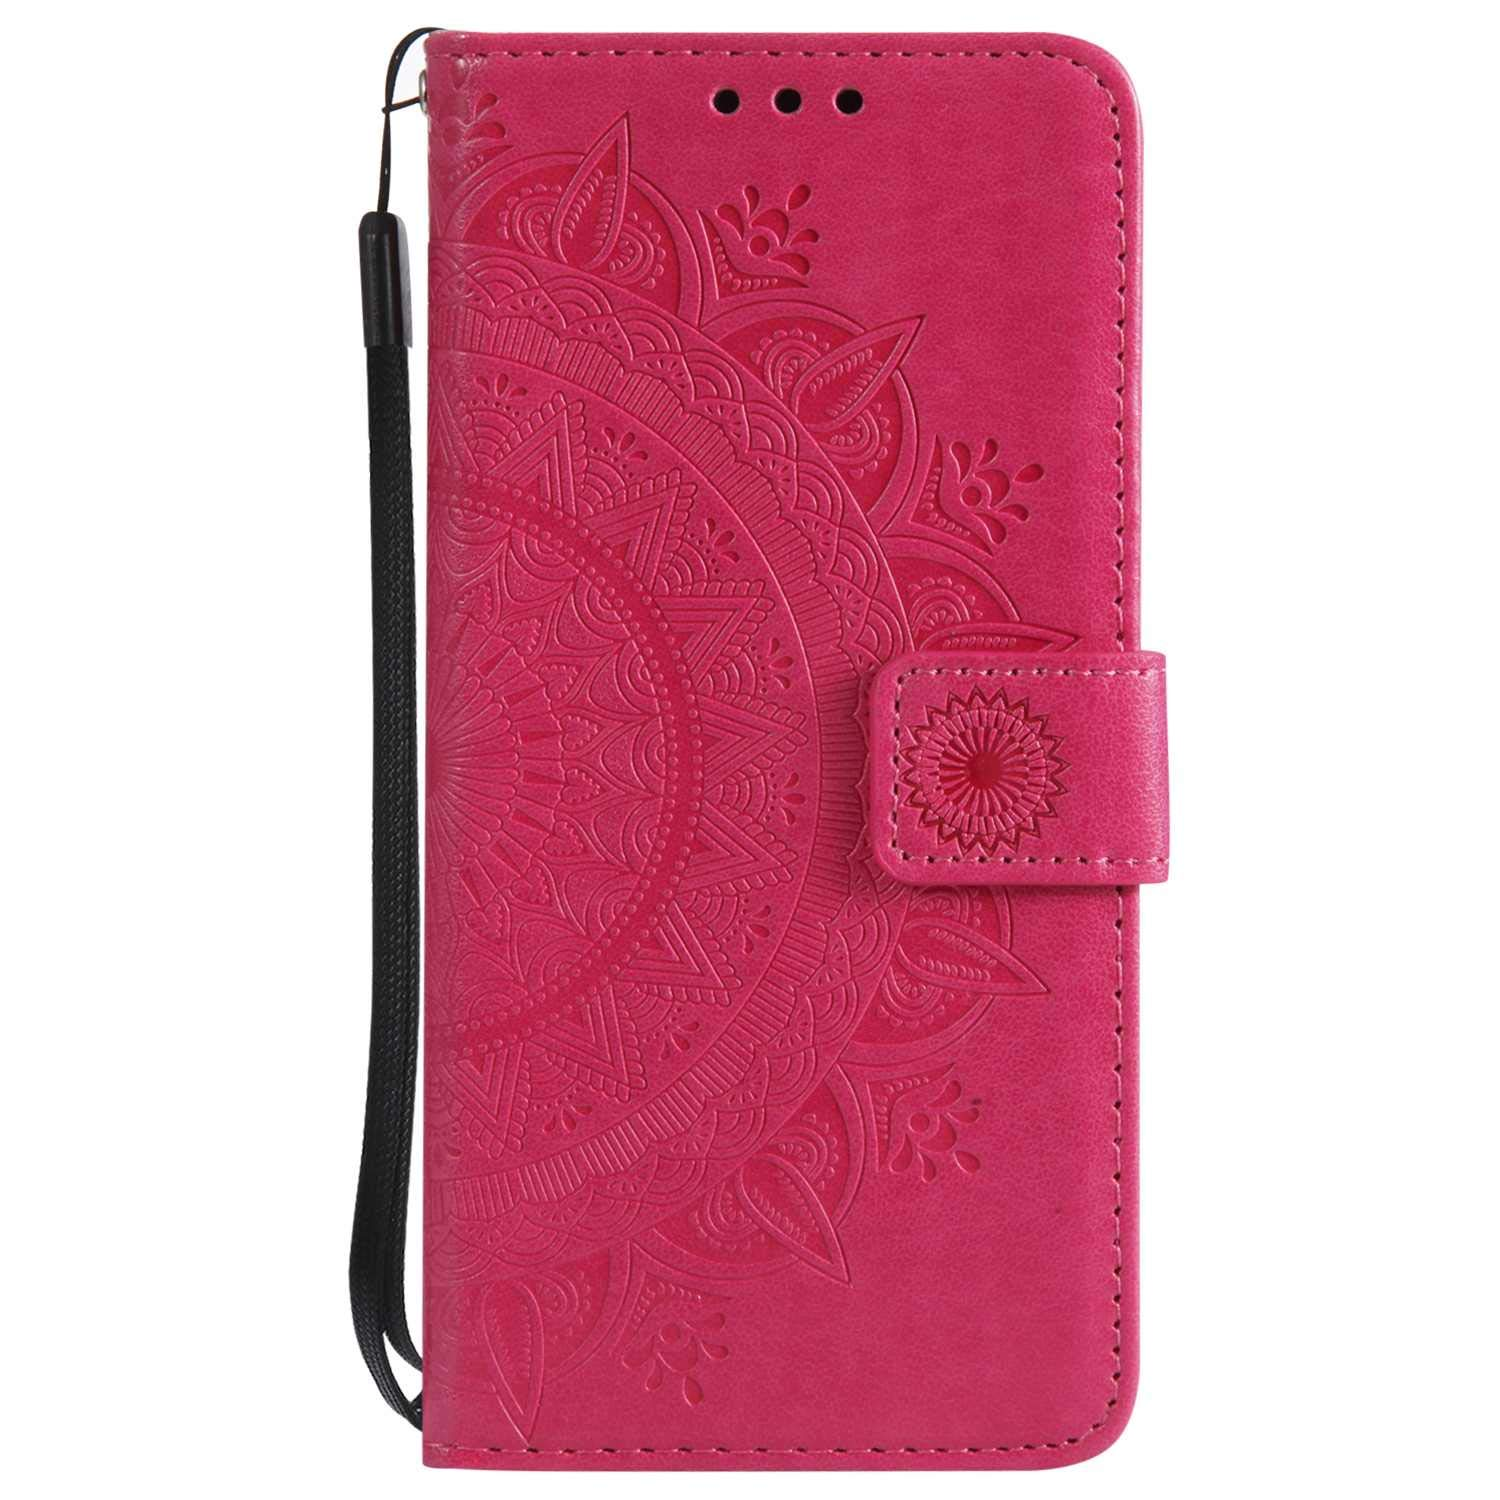 iPhone 7 8 Case, The Grafu Leather Case, Premium Wallet Case with [Card Slots] [Kickstand Function] Flip Notebook Cover for Apple iPhone 7/8, Rose Red